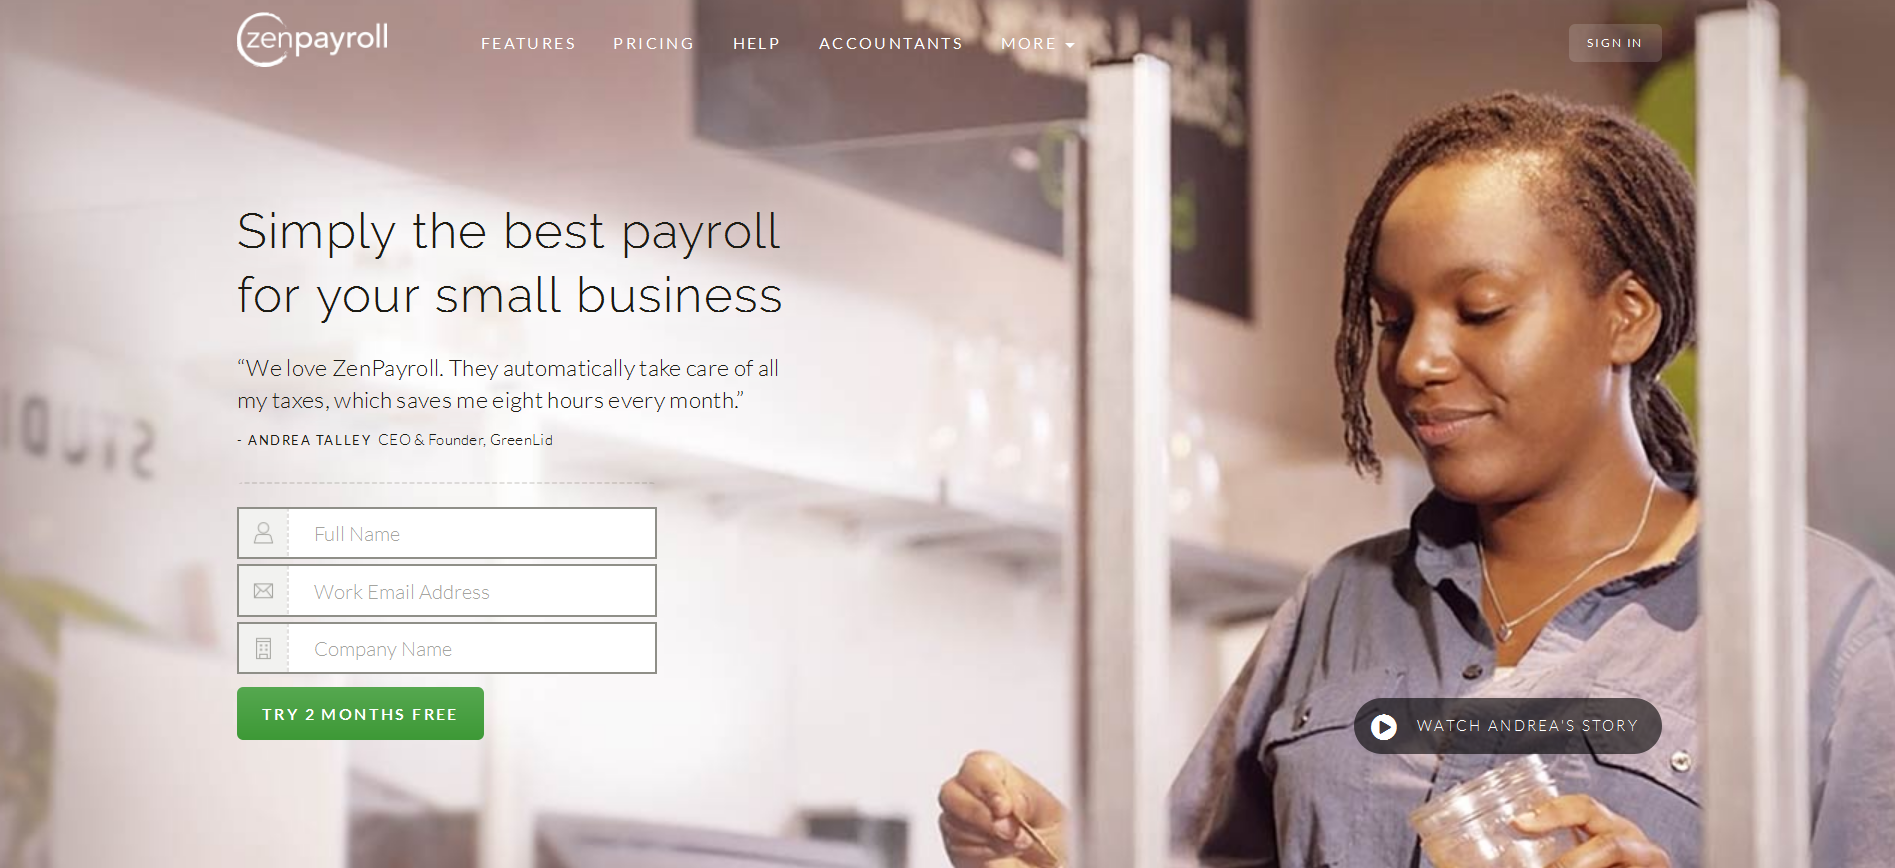 ZenPayroll startup solves the problem of payrolling